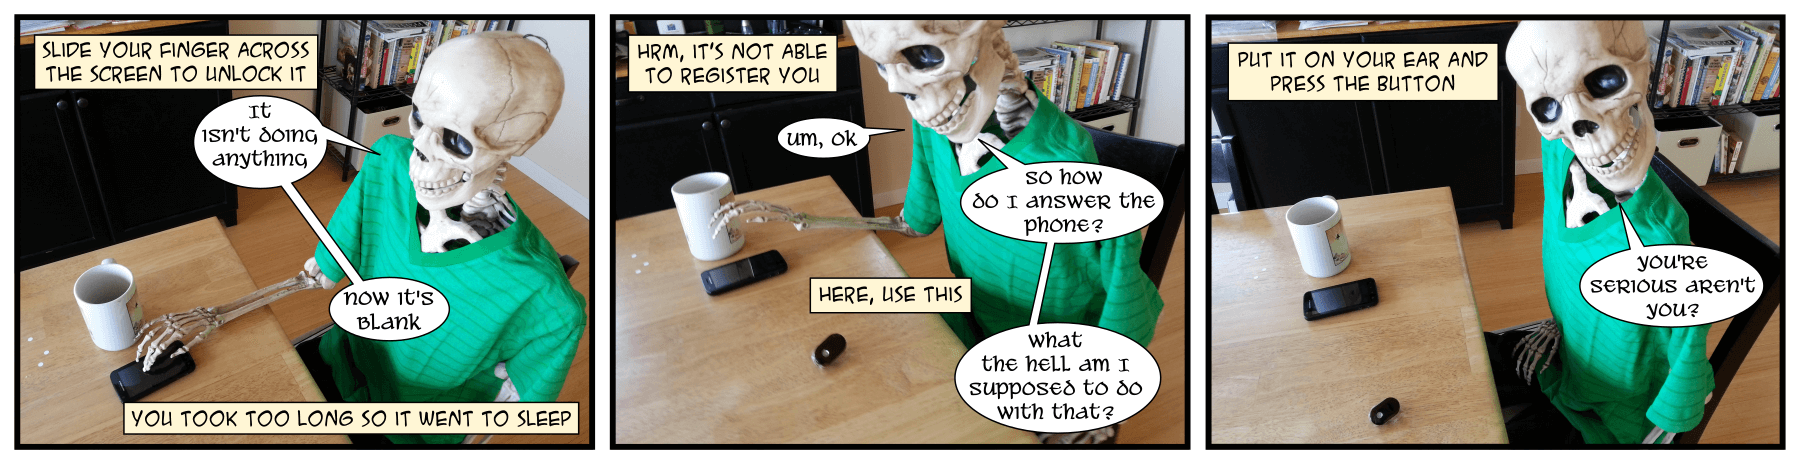 Once again, the phone has stopped ringing. I wonder what it's like to not be a slave to the phone ringing.